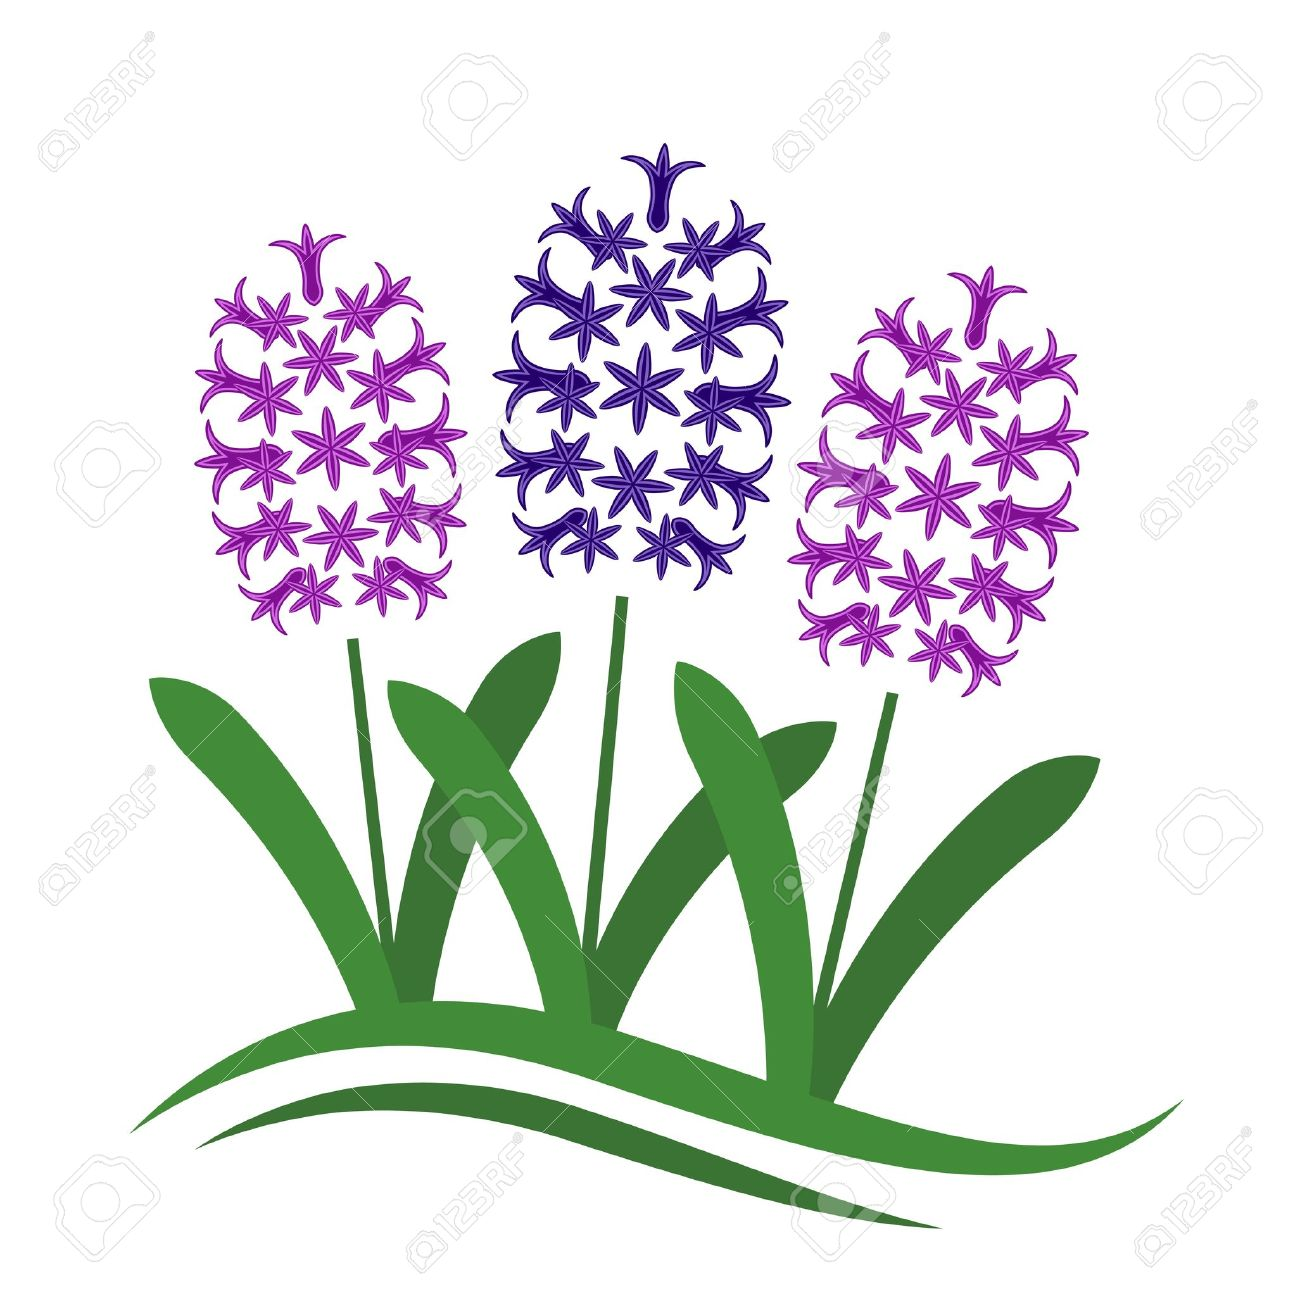 1,005 Hyacinth Stock Vector Illustration And Royalty Free Hyacinth.